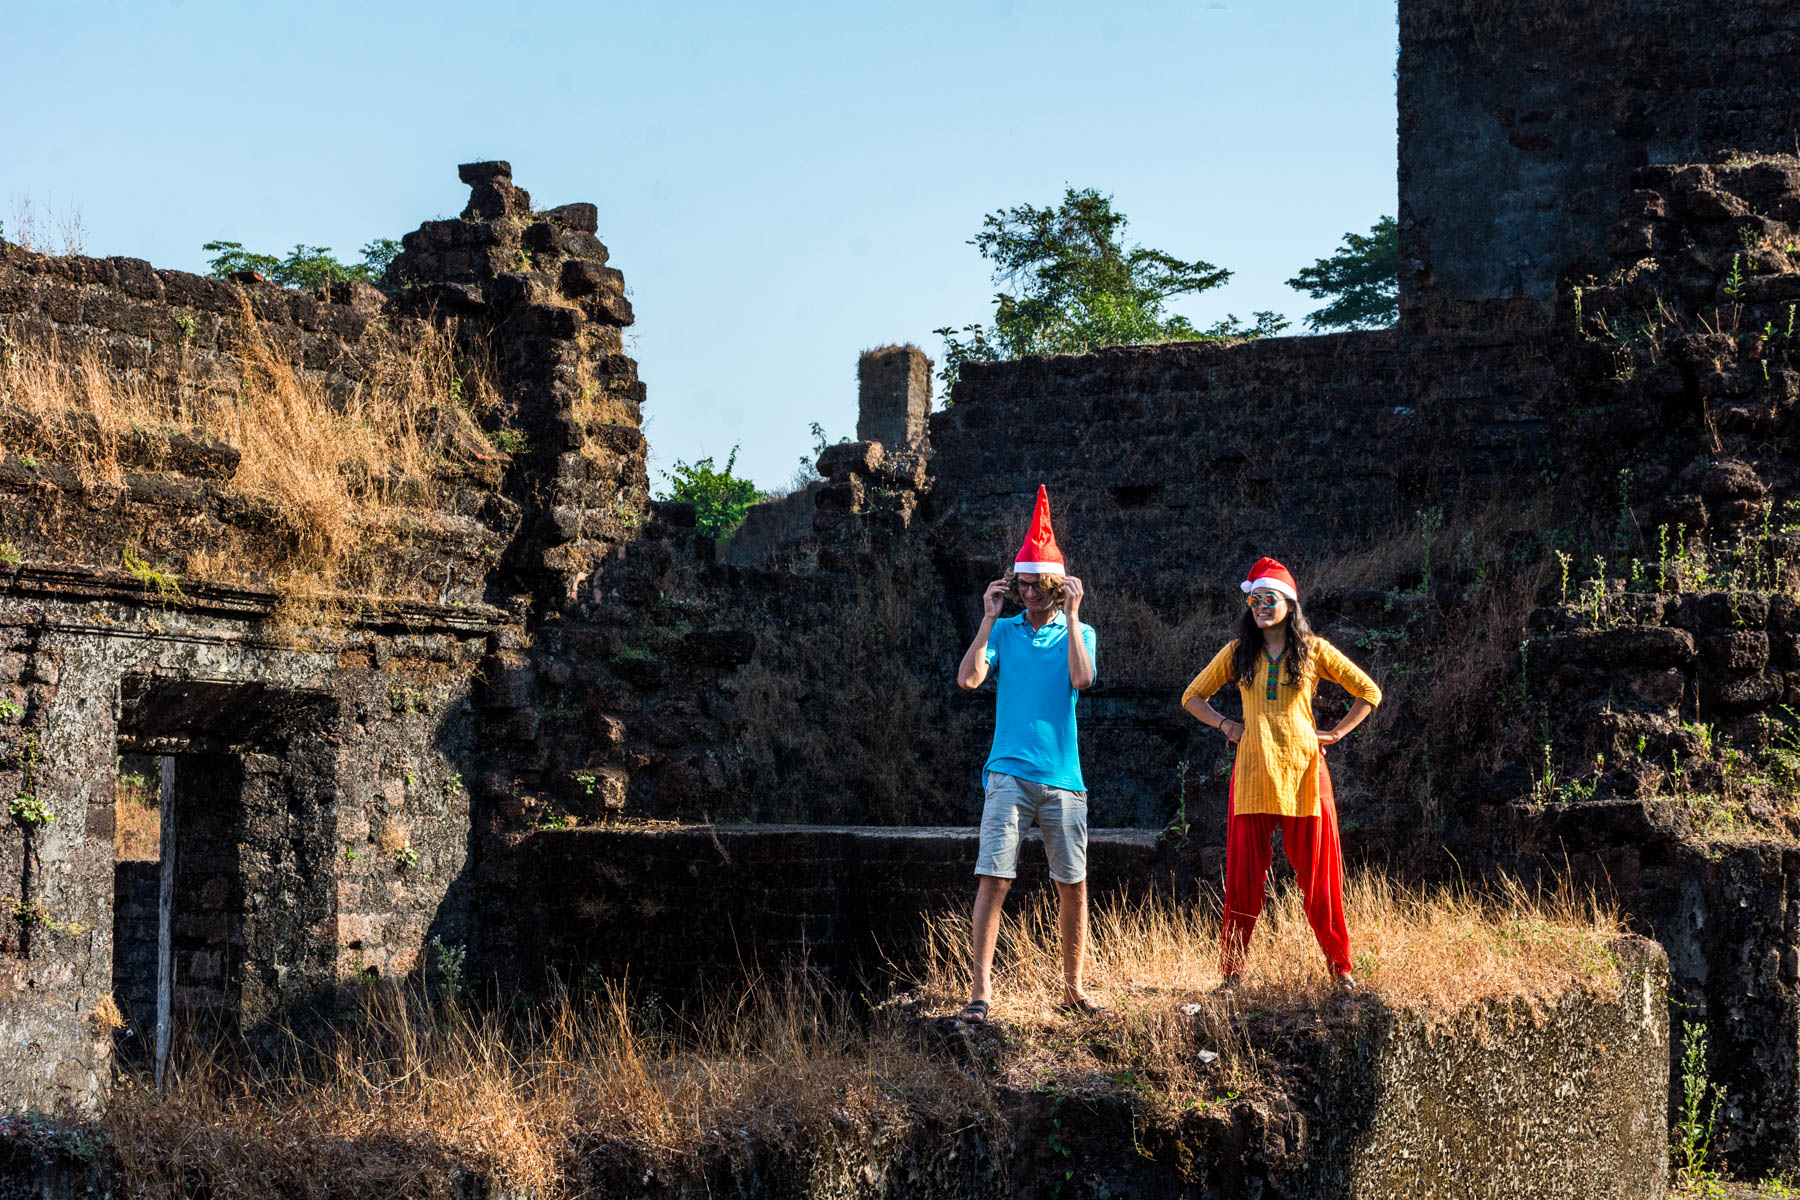 Two foreigners wearing Santa hats in church ruins